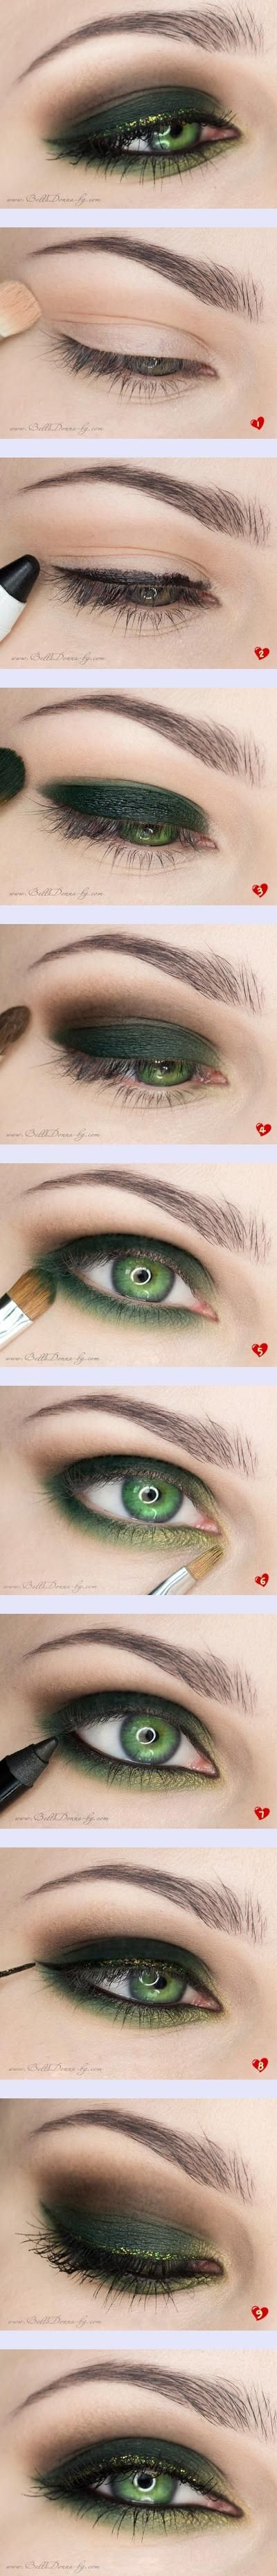 St. patrick's Day Perfect makeup idea